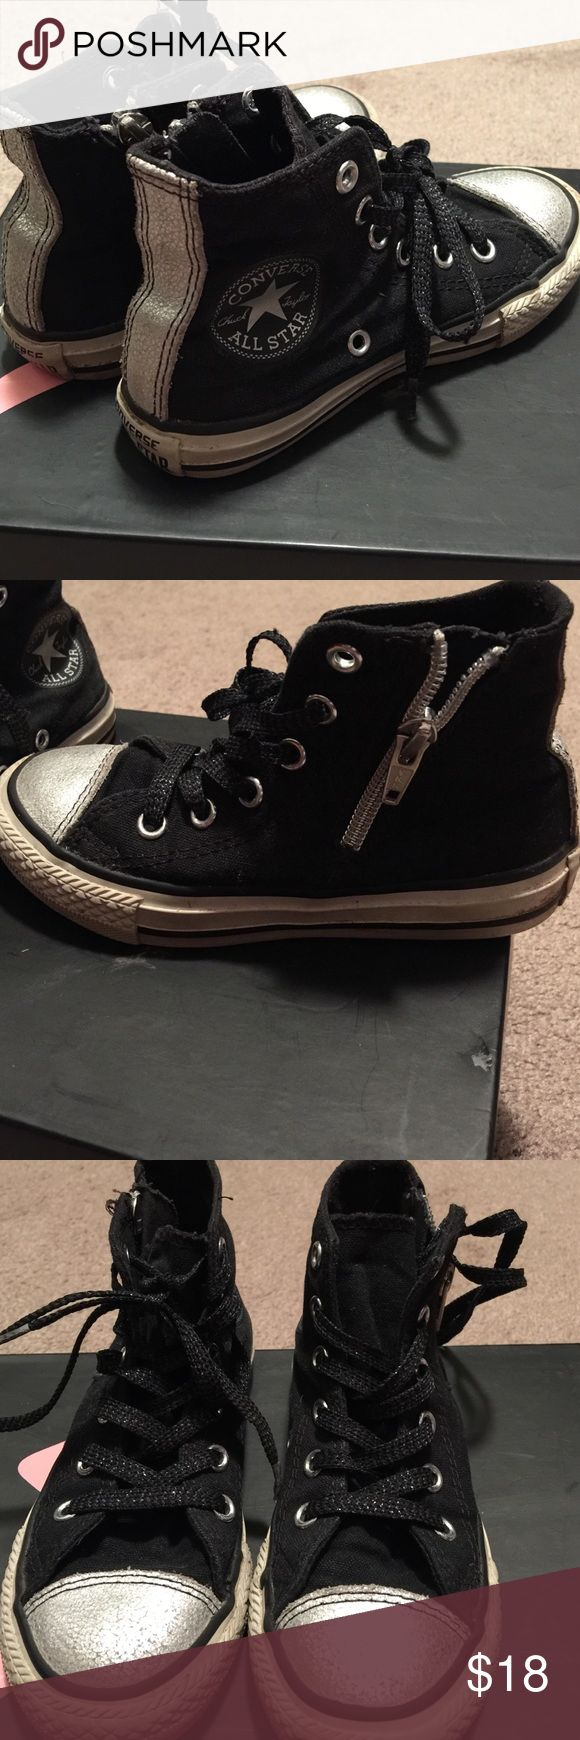 Little girls high top converse size 11 shoe Black an silver girls high top converse size 11 with a zipper on the side. Converse Shoes Sneakers